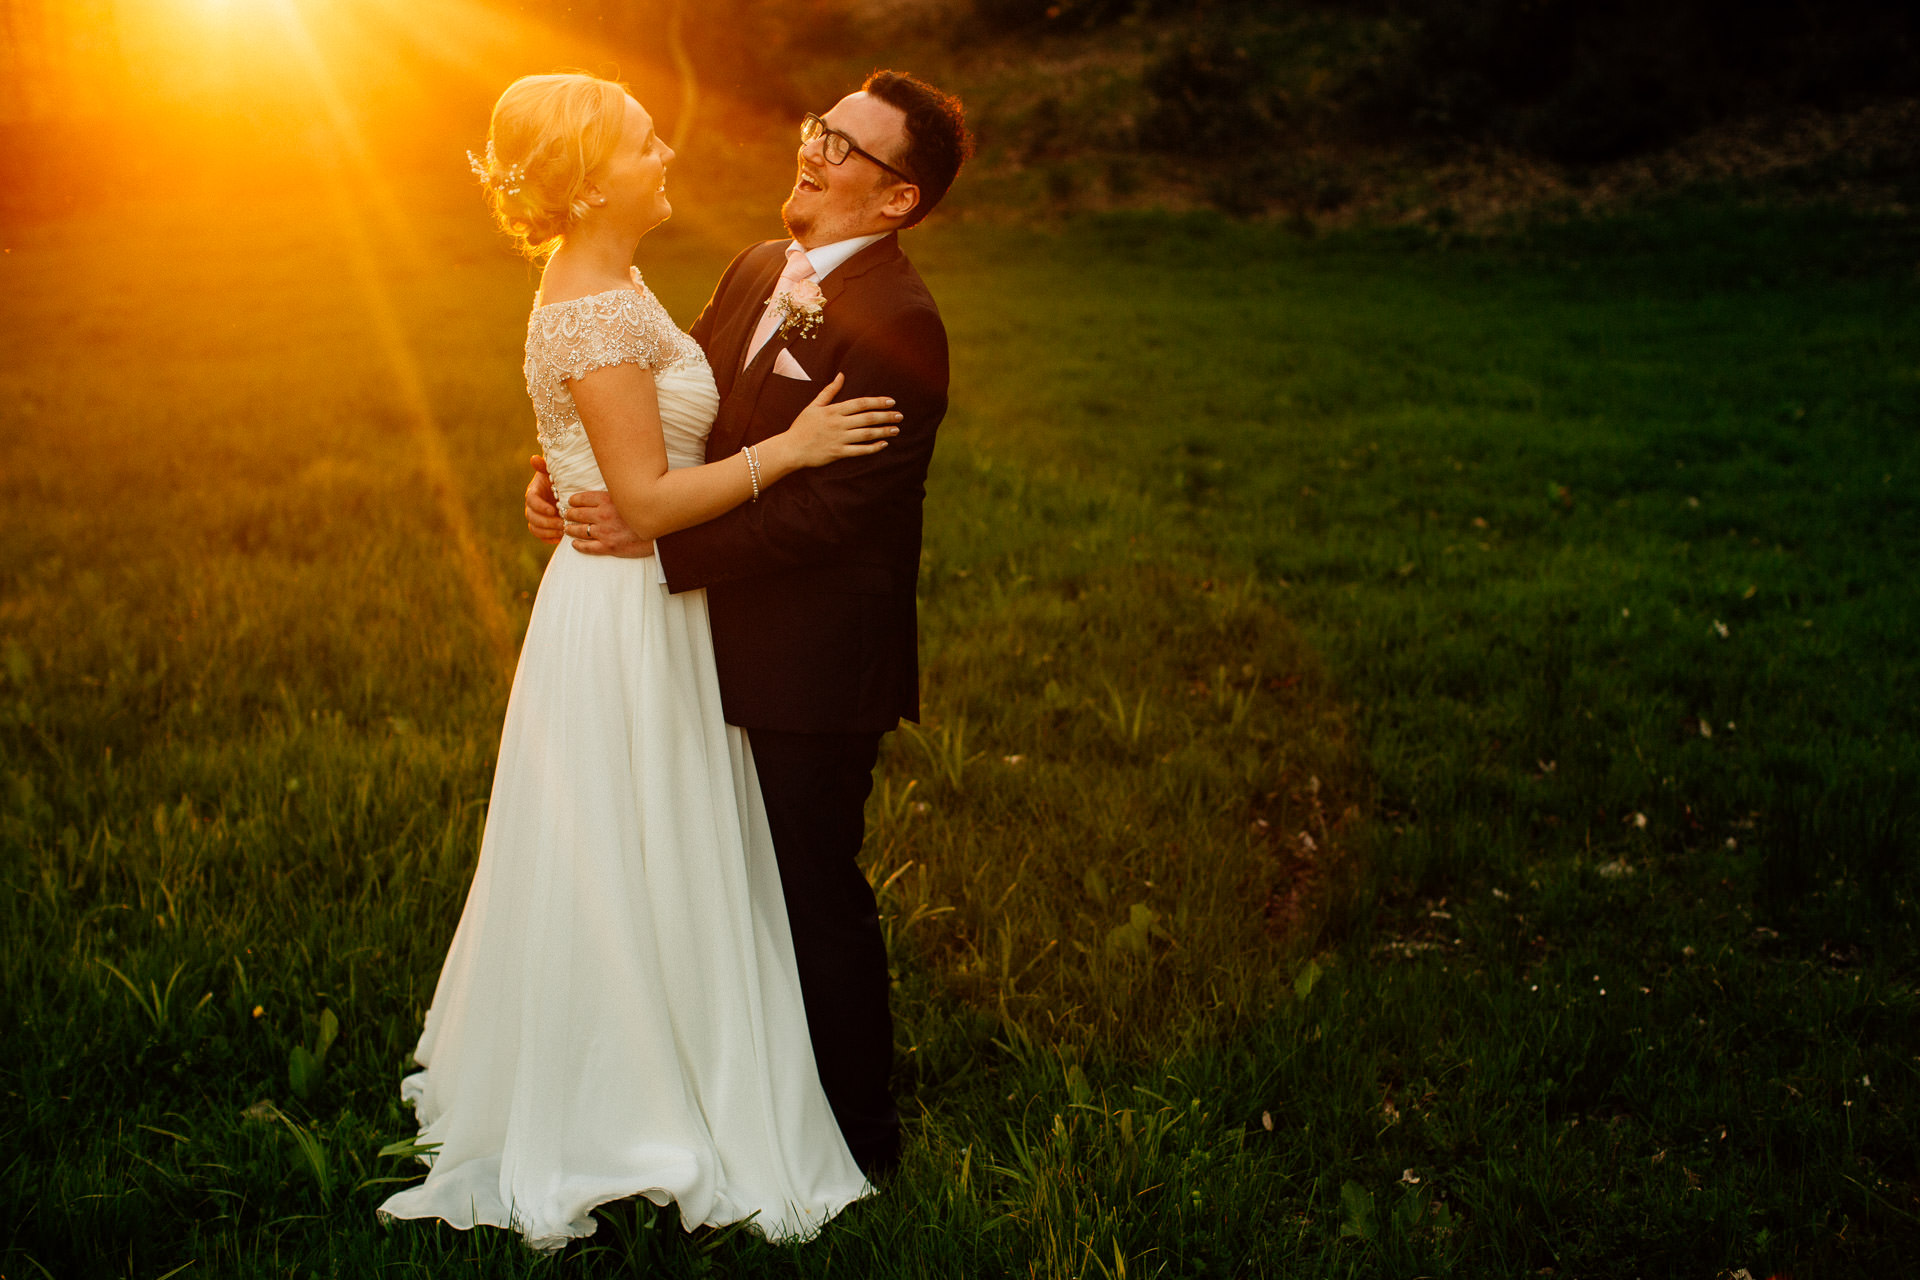 The Wild Boar Wedding Photography - EM - couple laughing together in sunset light